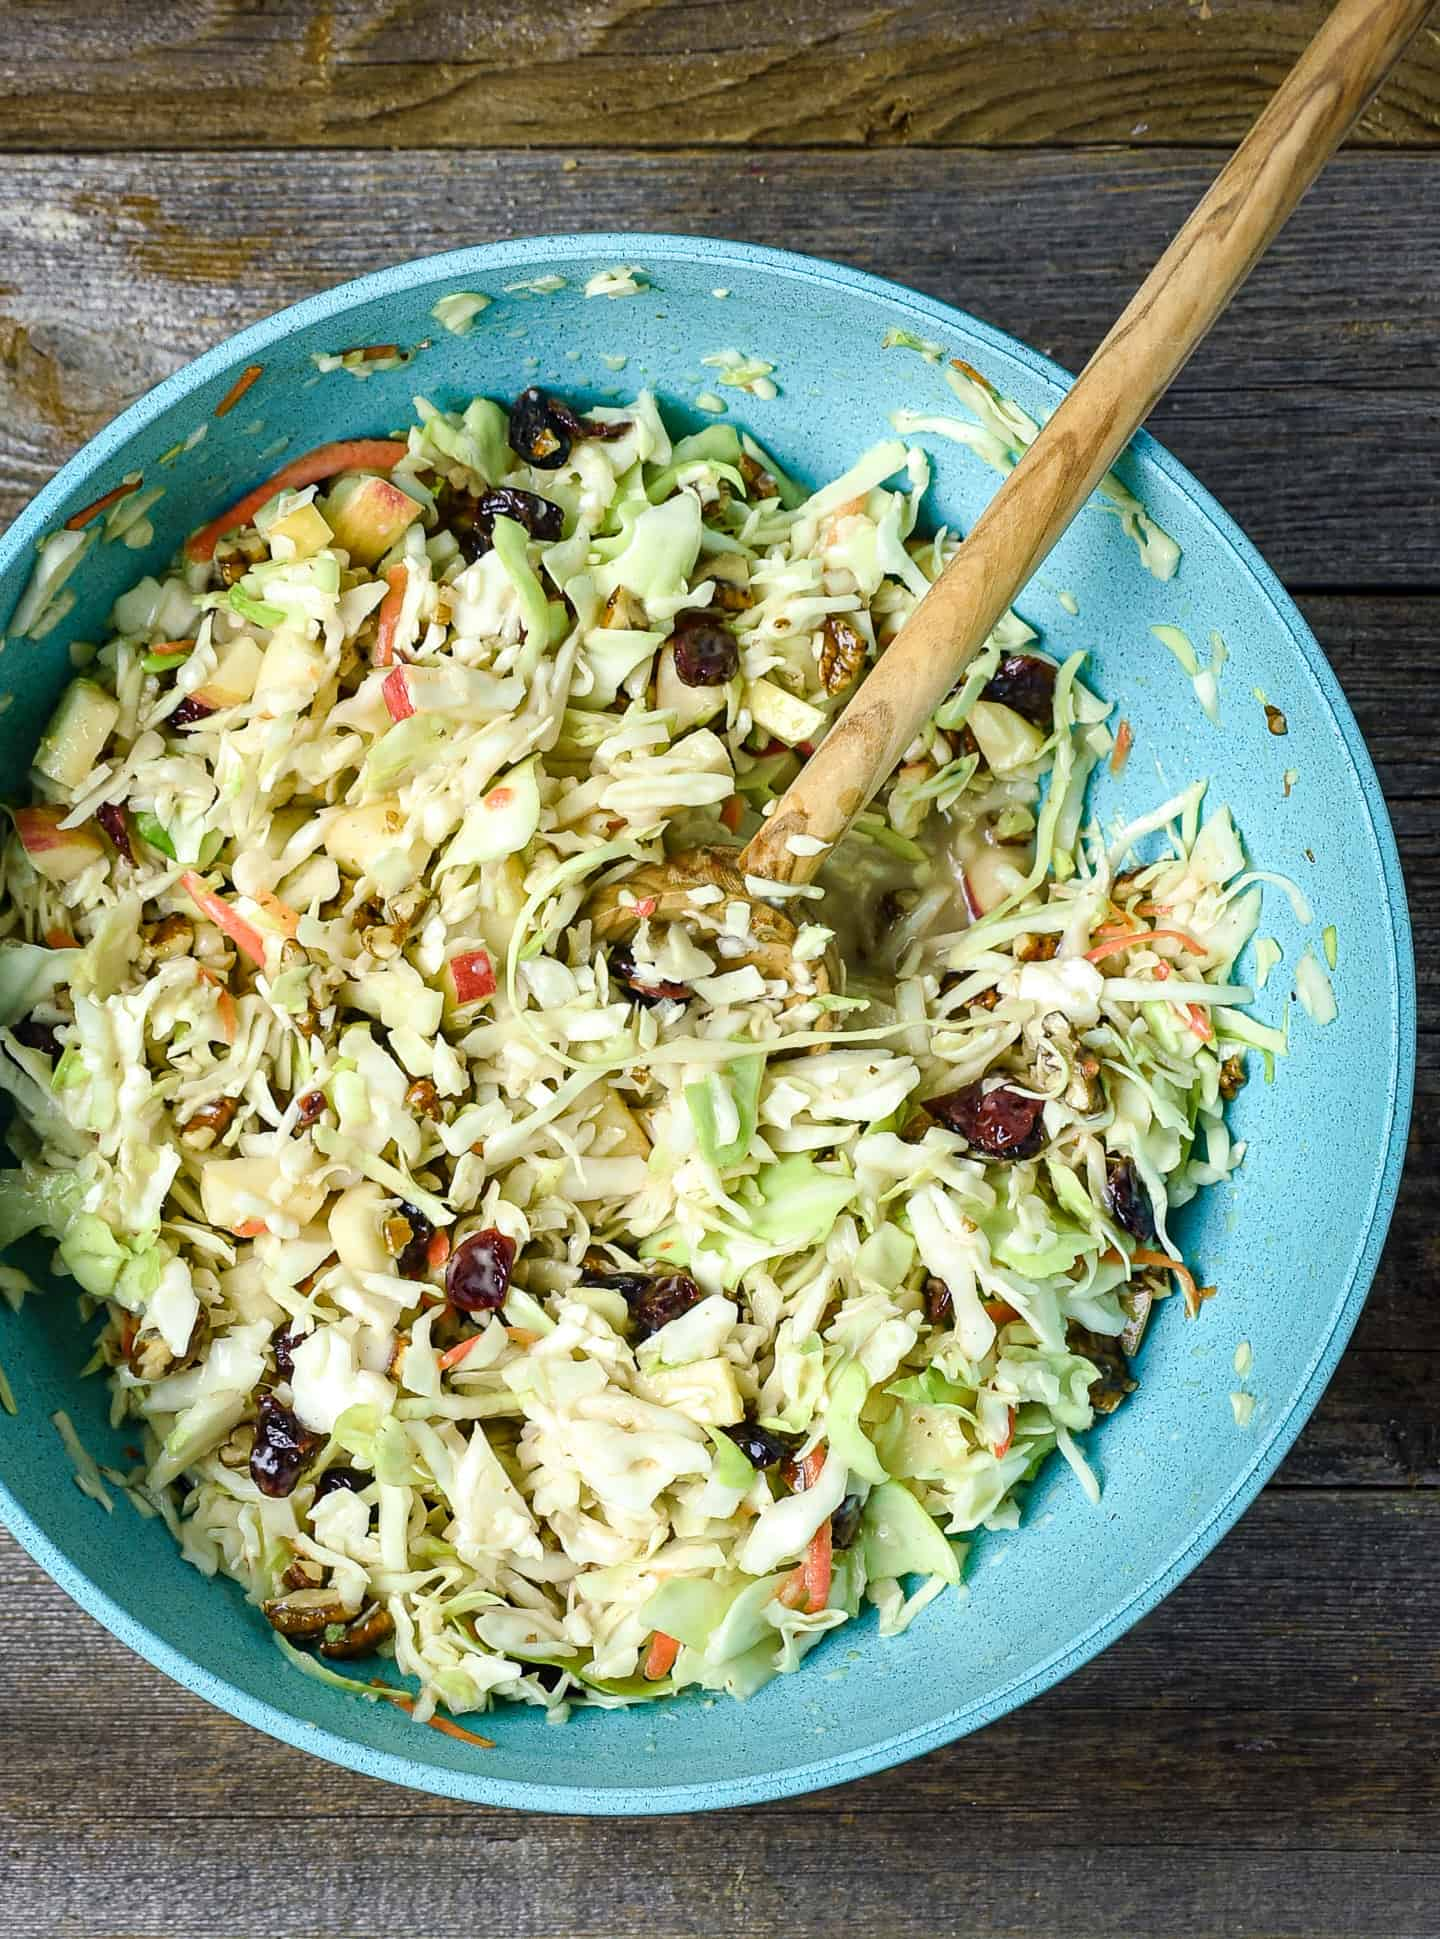 Coleslaw mixture in large bowl.